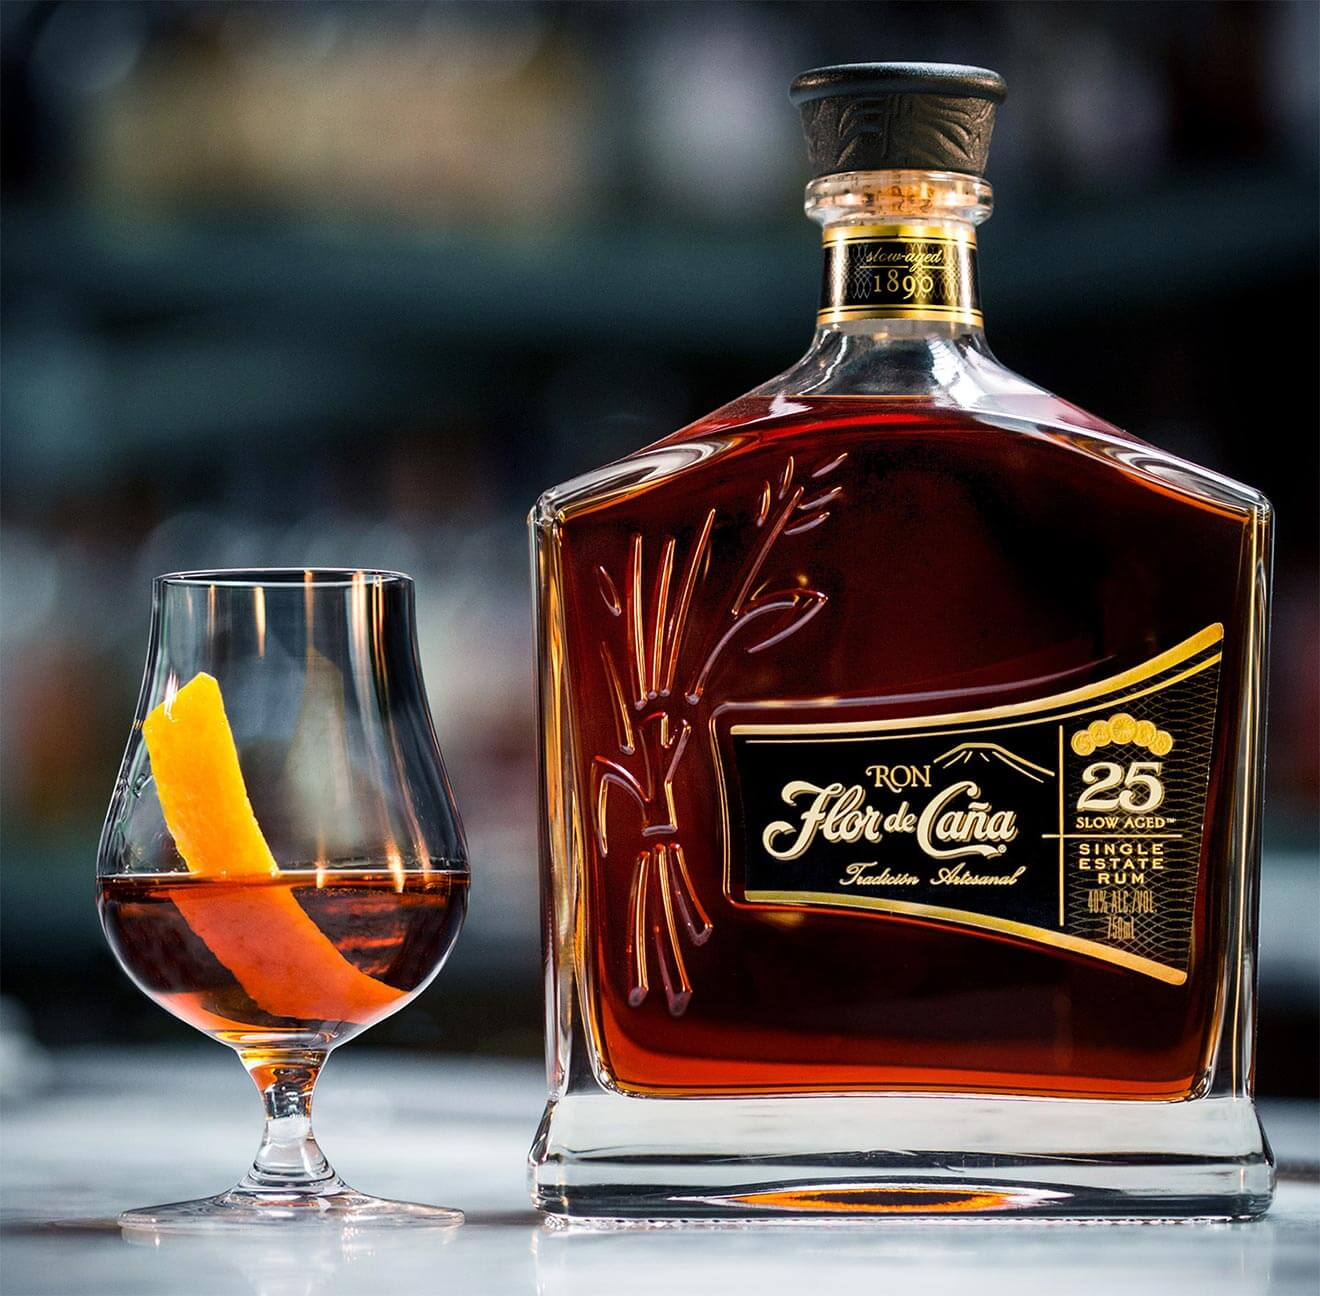 Flor de Caña Centenario 25, bottle and glass